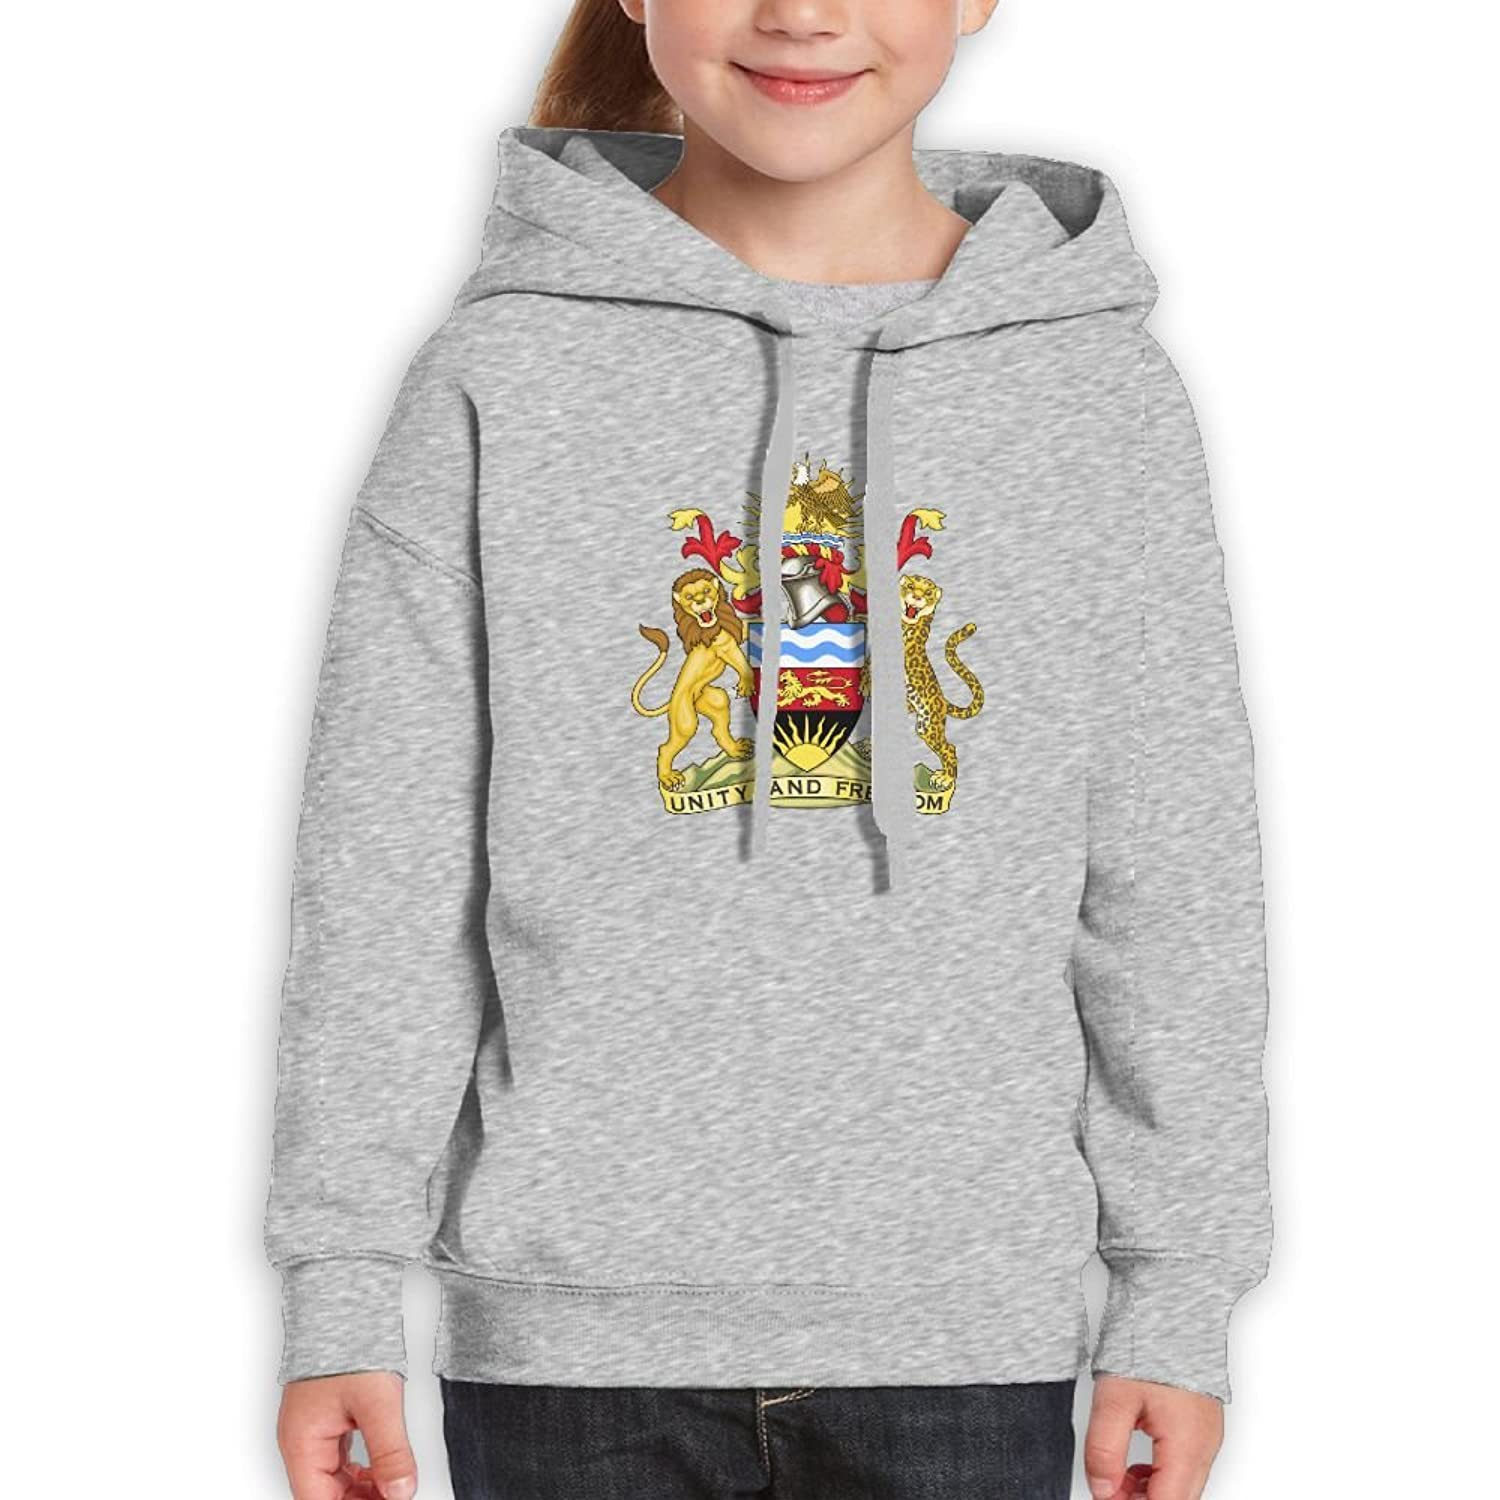 DTMN7 Coat Of Arms Of The Malawi Cool Printed Cotton Blouses For Kids Unisex Spring Autumn Winter